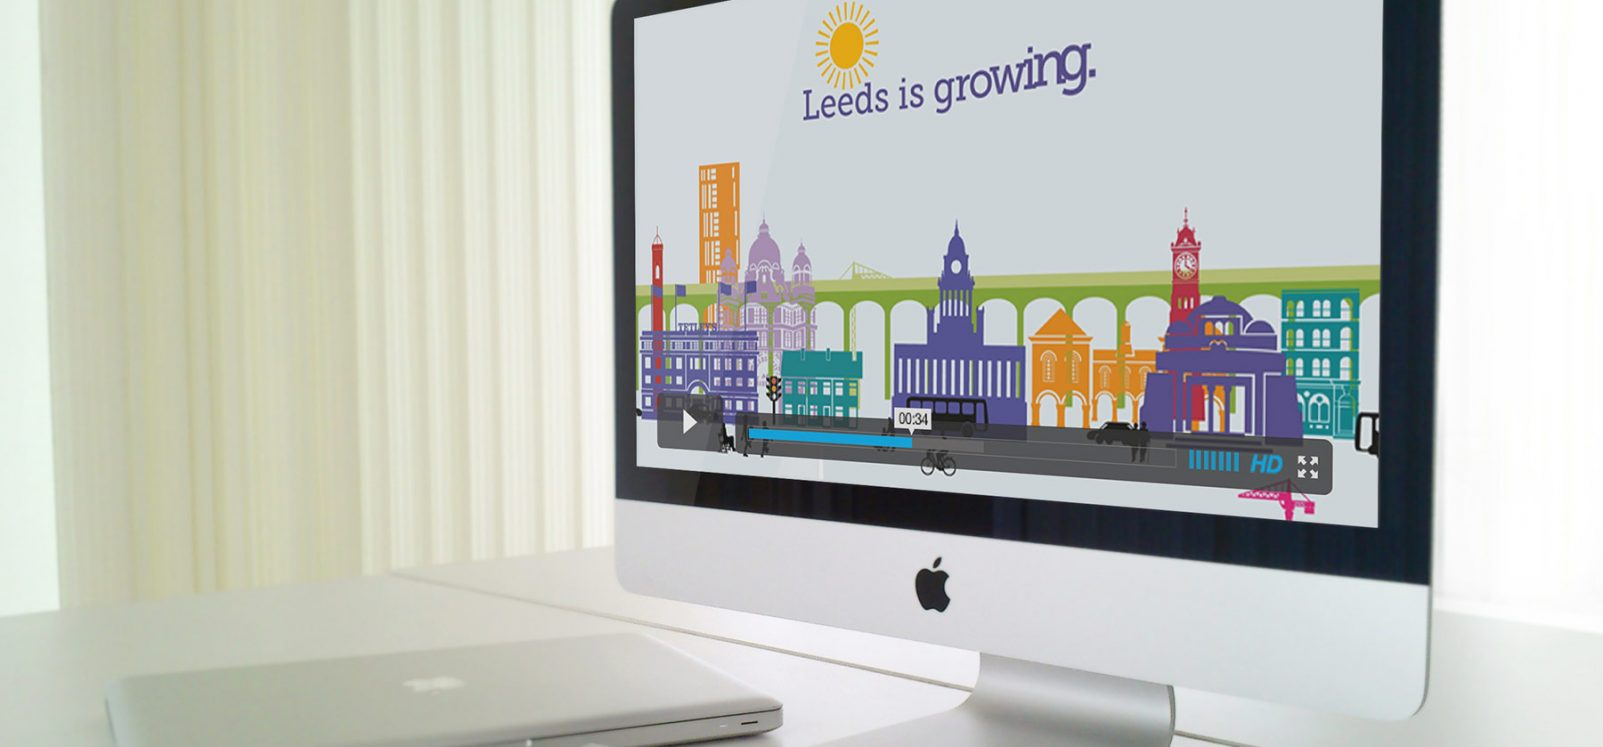 Leeds City Council - A Marketing Agency | SEO & Digital